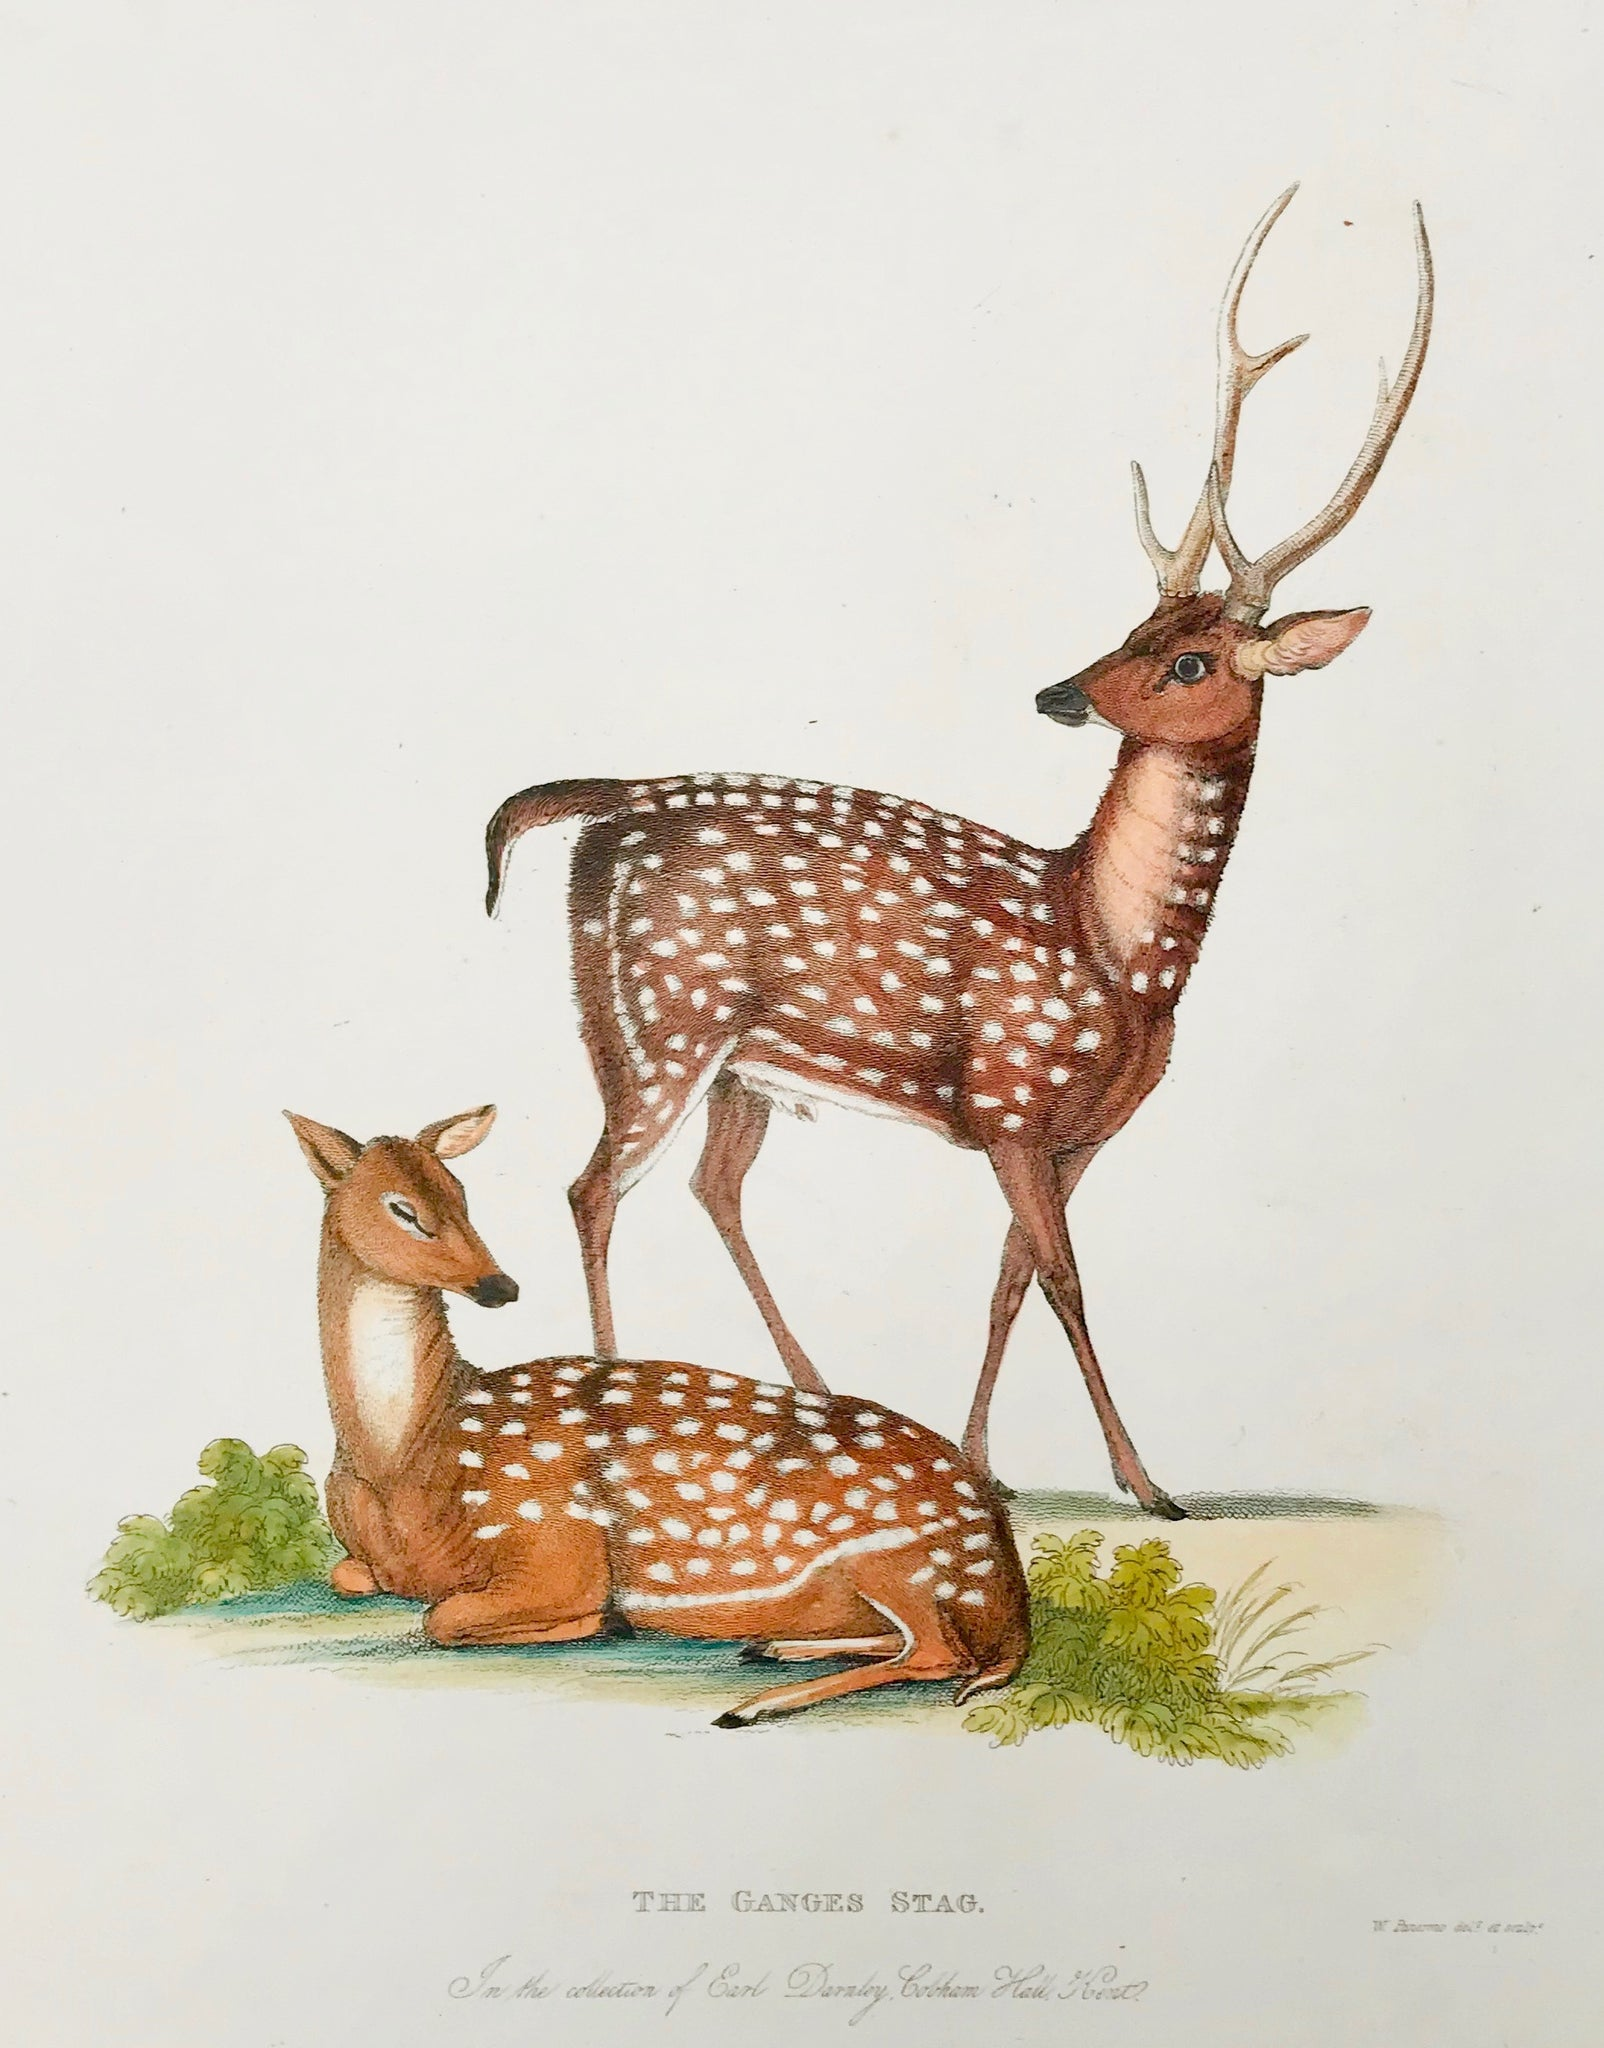 The Ganges Stag  In the Collection of Earl Darnby, Cobham Hall, Kent.  Published by Thomas Kelly in London, 1829  A series of copper etchings in zoologically correct and very fine modern coloring.